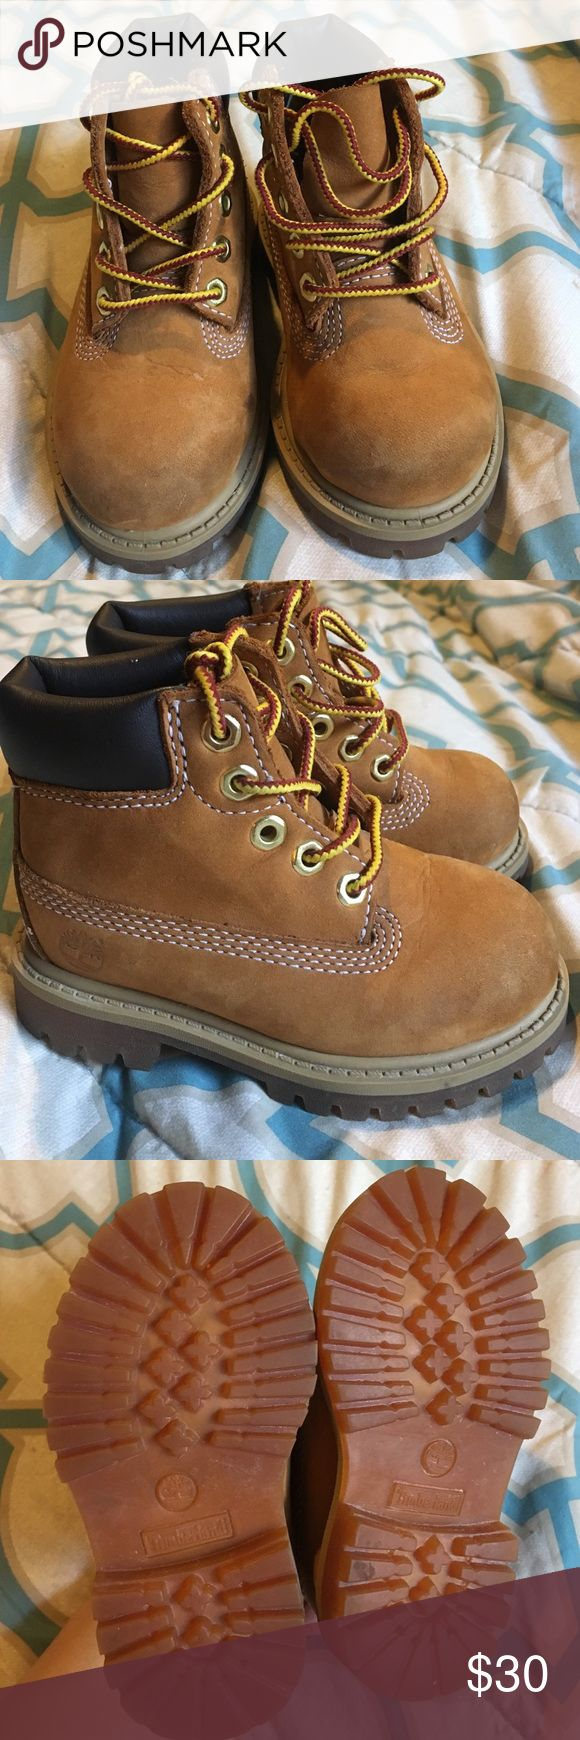 Toddler Timberland boots Brown waterproof boot for toddler in great condition with a lot of tread left Timberland Shoes Boots